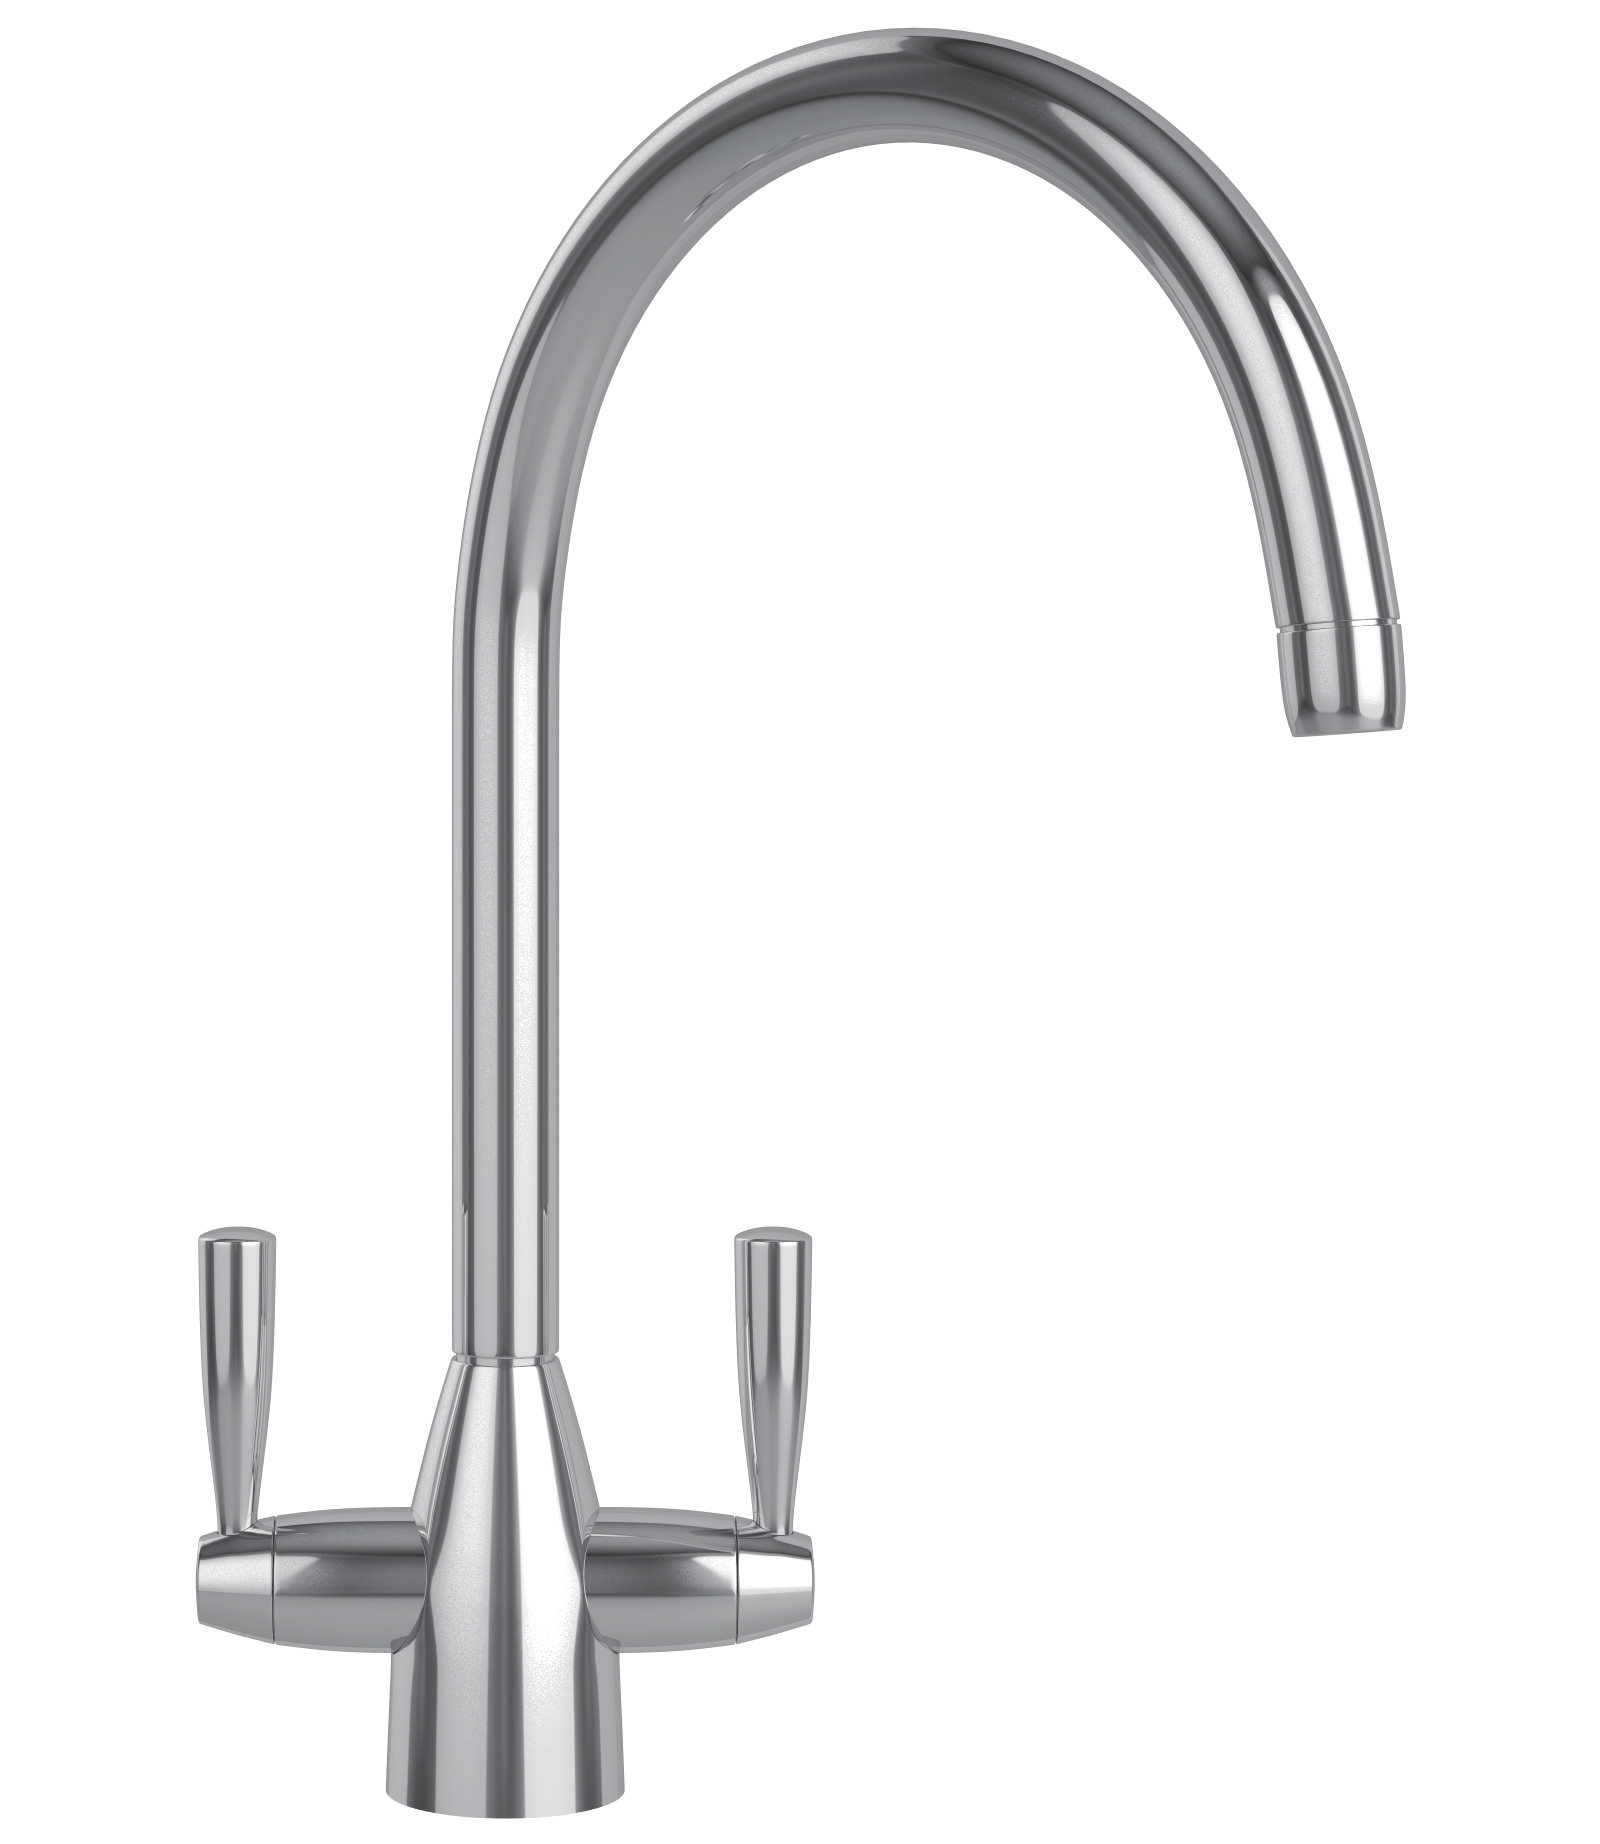 Franke Eiger Kitchen Sink Mixer Tap Chrome 1150049989 focus for Taps Uk Kitchen Sinks